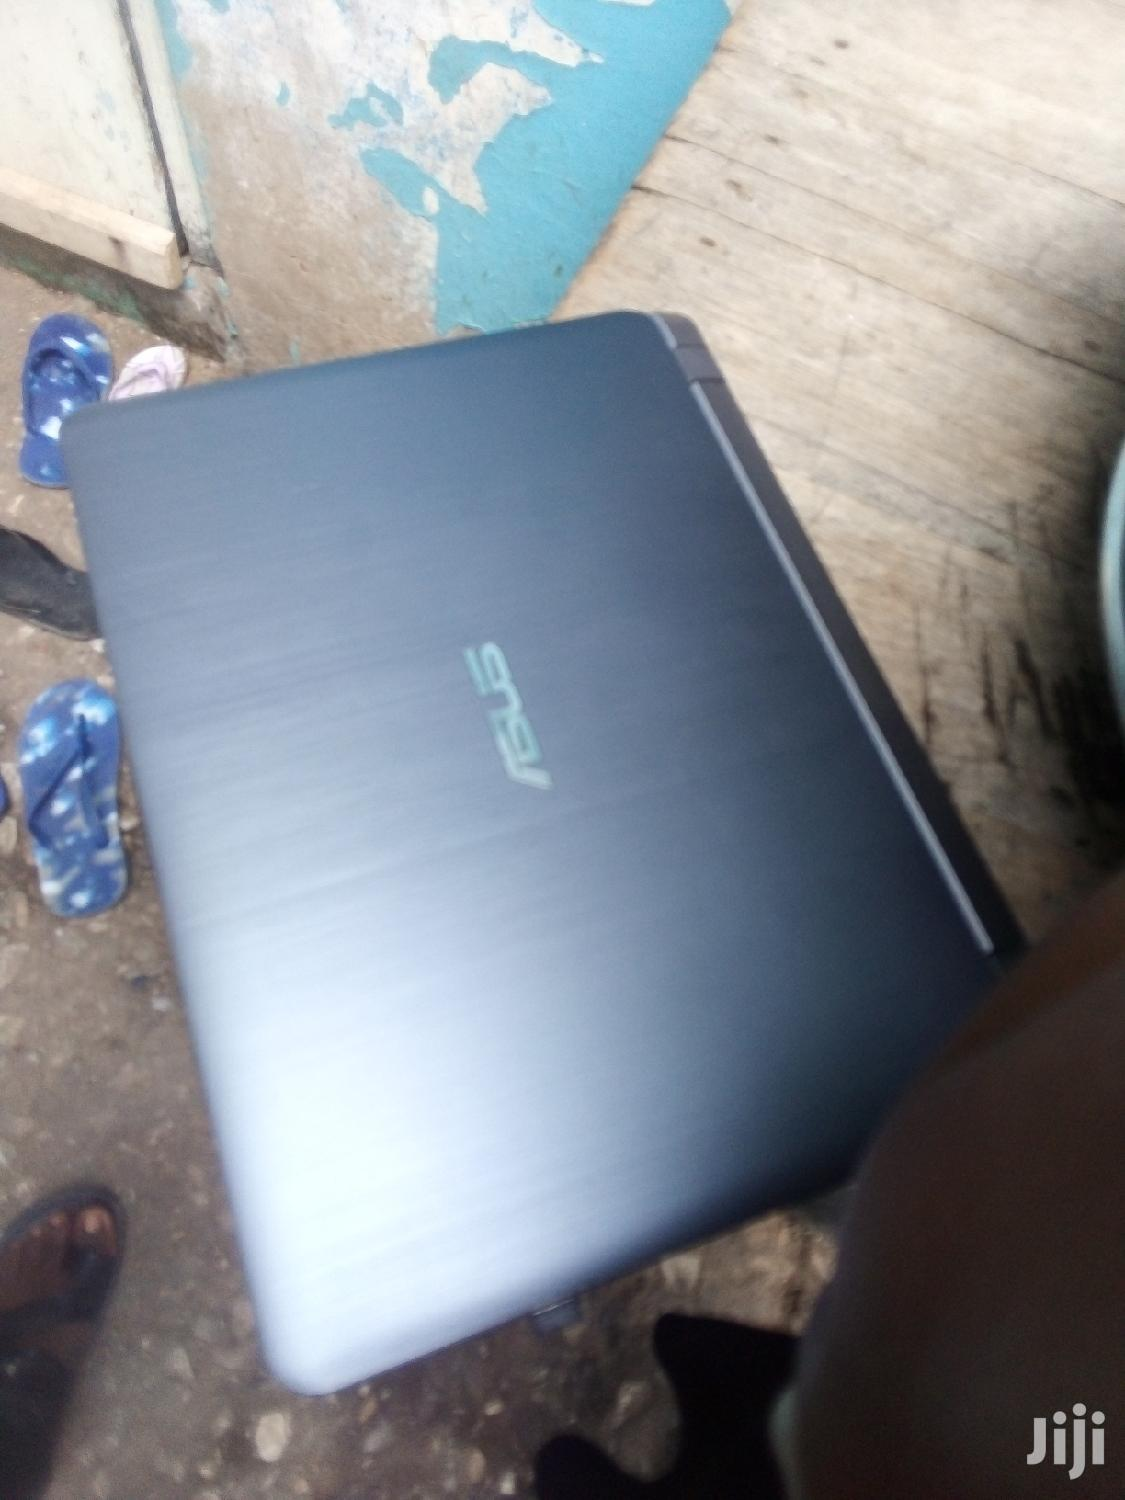 New Laptop Asus F450CA 4GB Intel Core I5 SSD 500GB | Laptops & Computers for sale in Dansoman, Greater Accra, Ghana